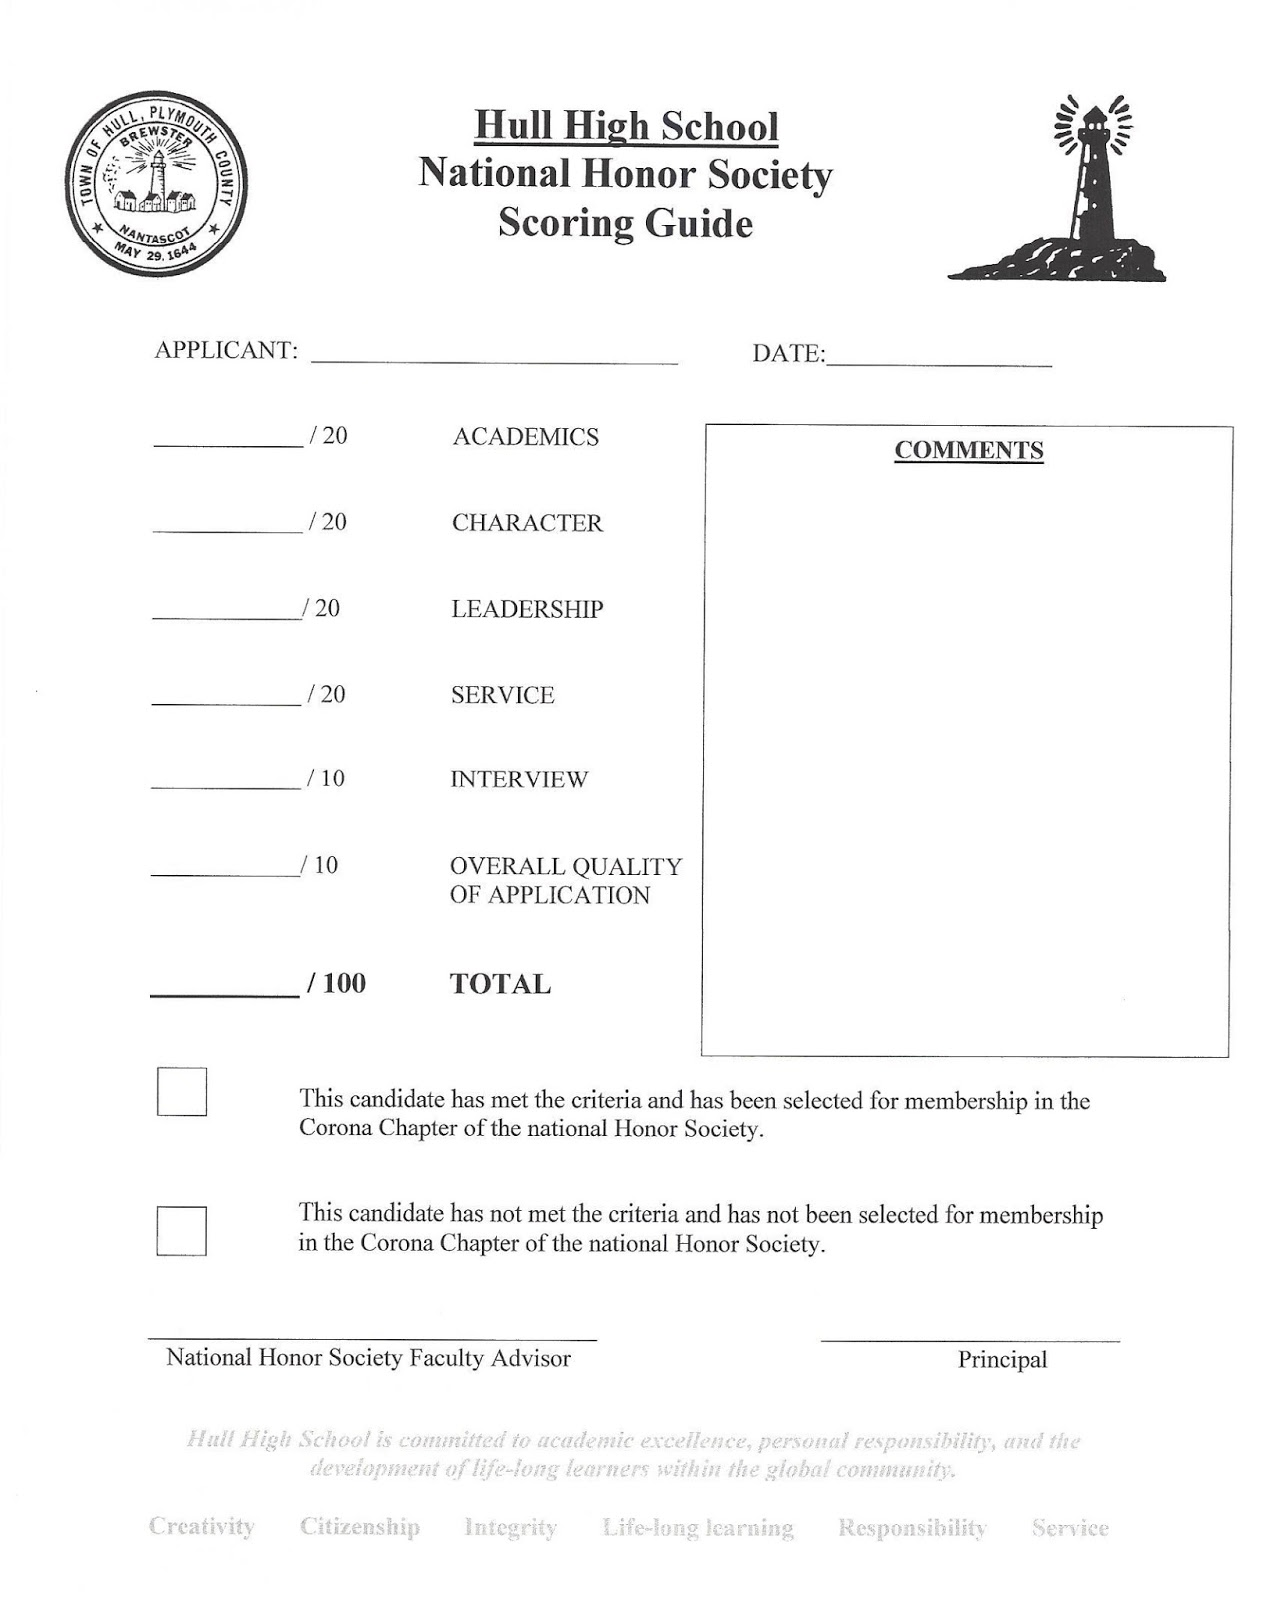 national honor society selection essay help please report national honor society selection essay help please